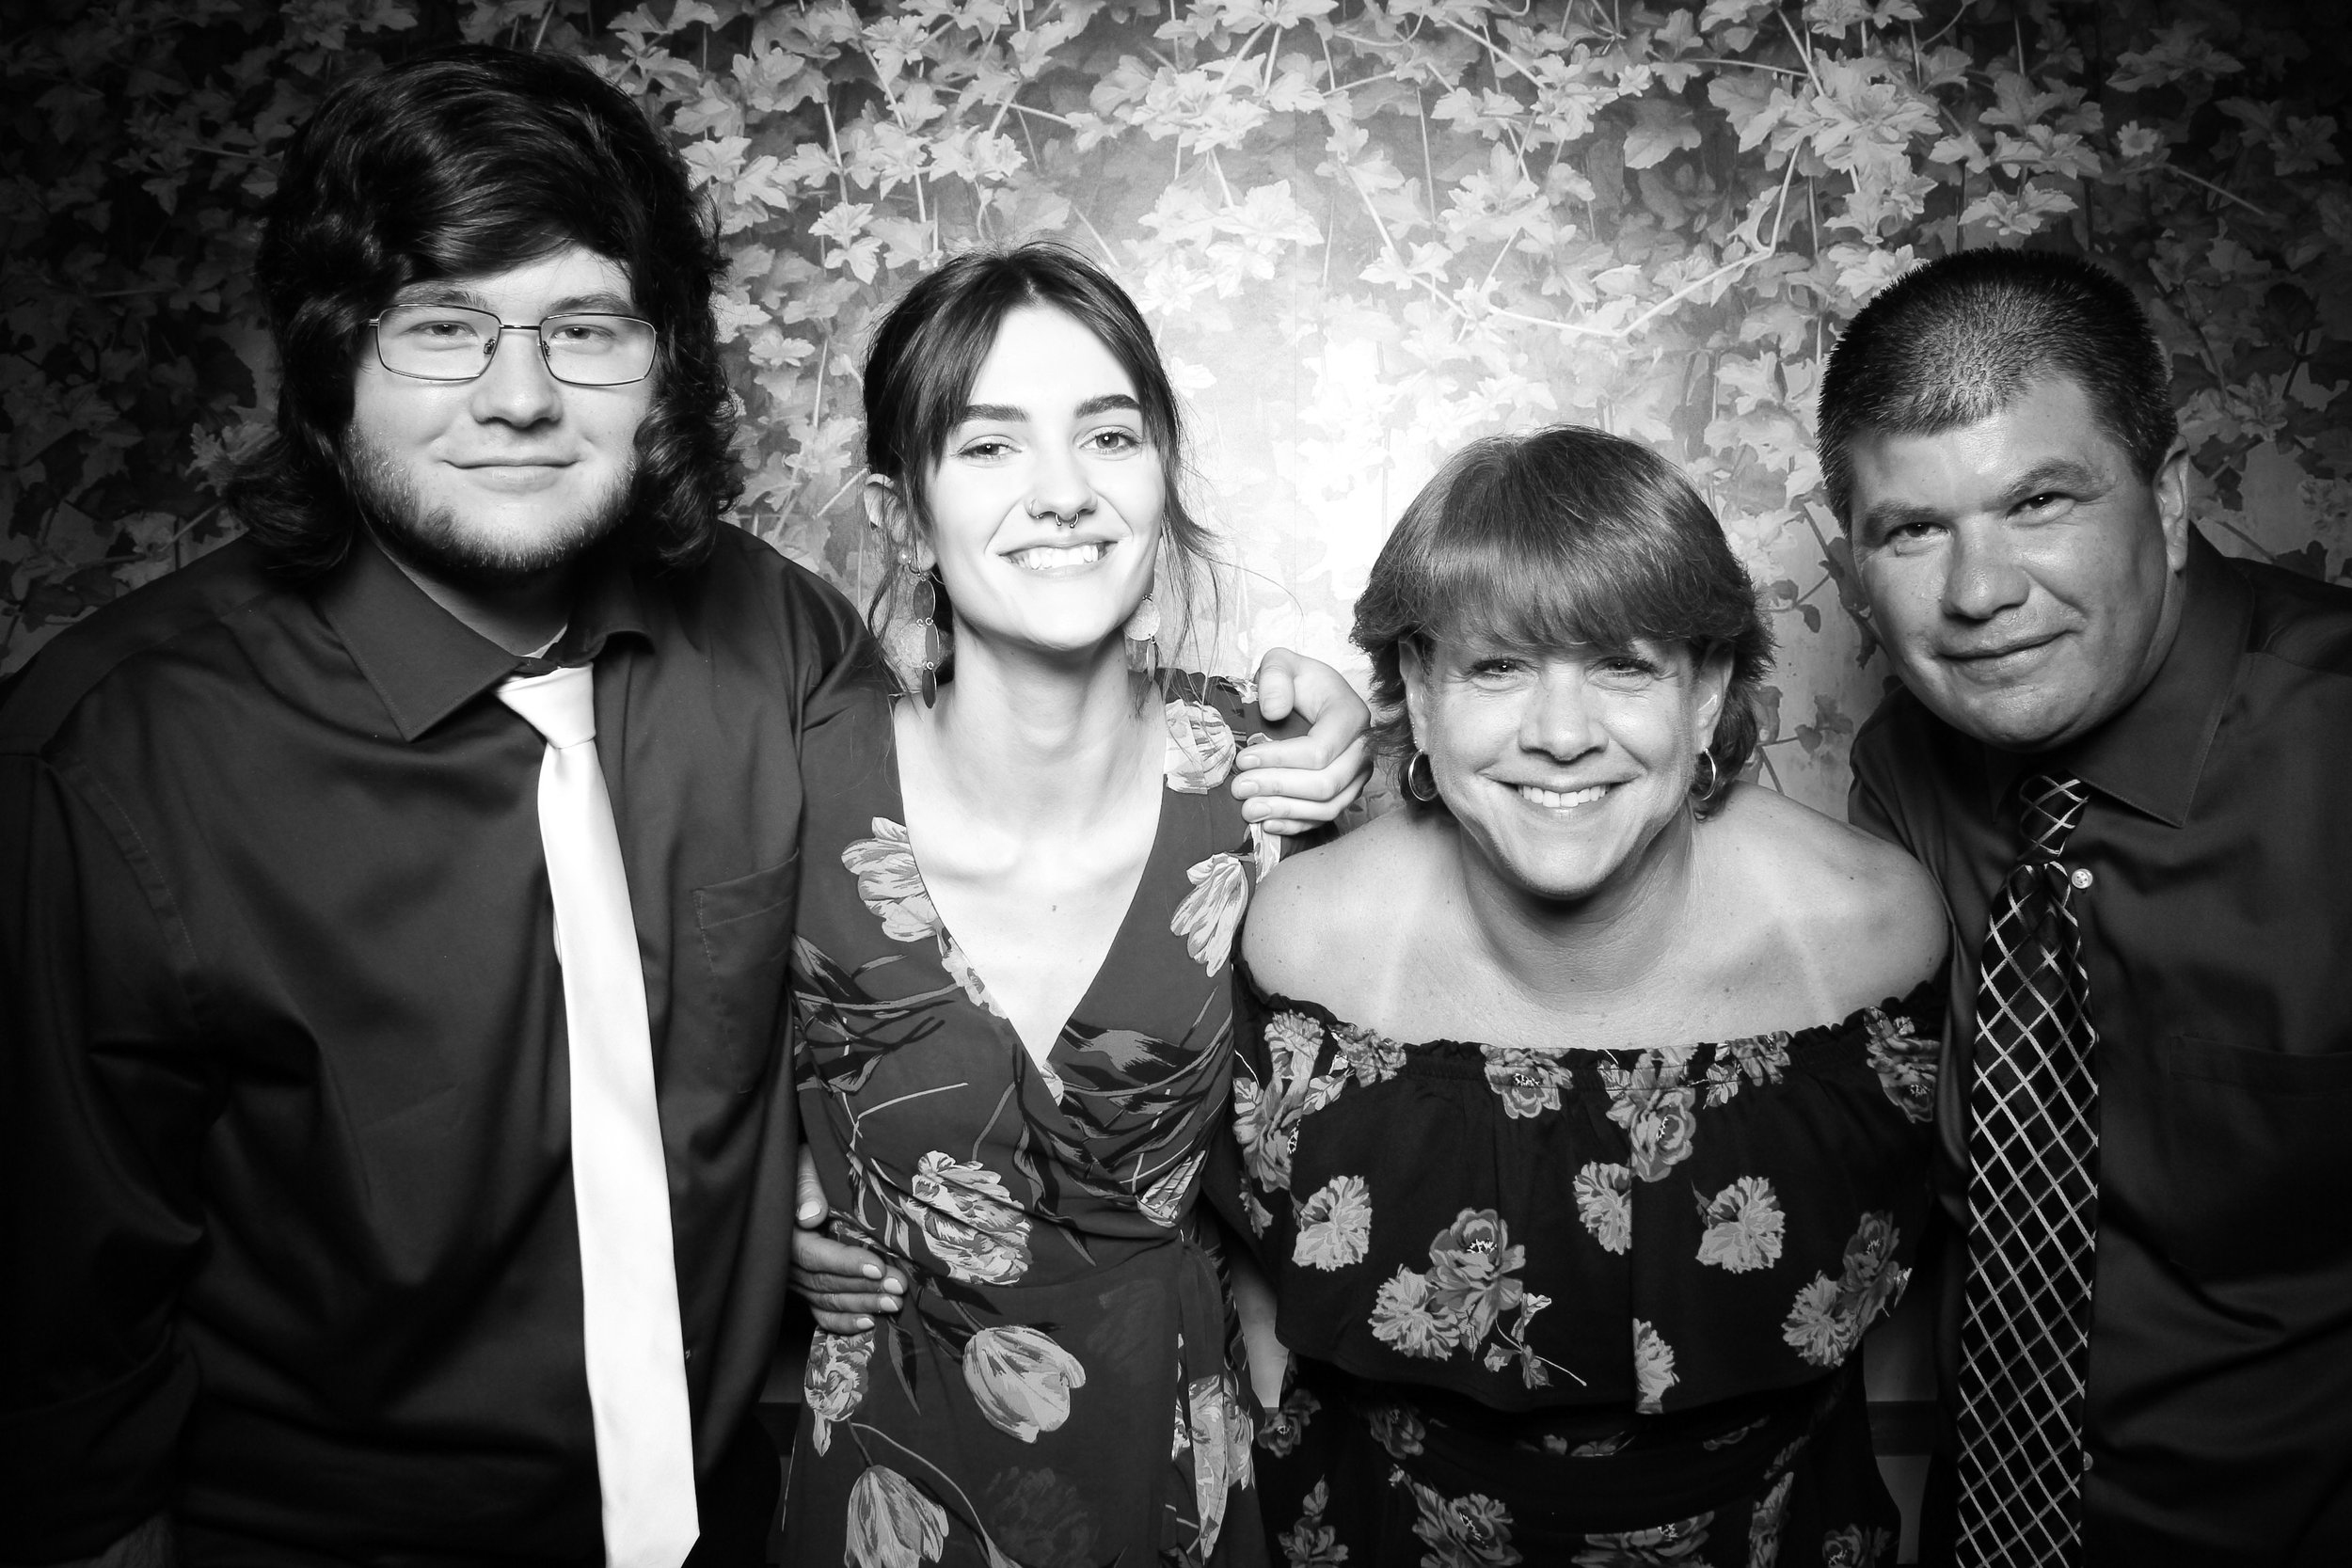 Randall_Oaks_Country_Club_Wedding_West_Dundee_Photo_Booth_12.jpg